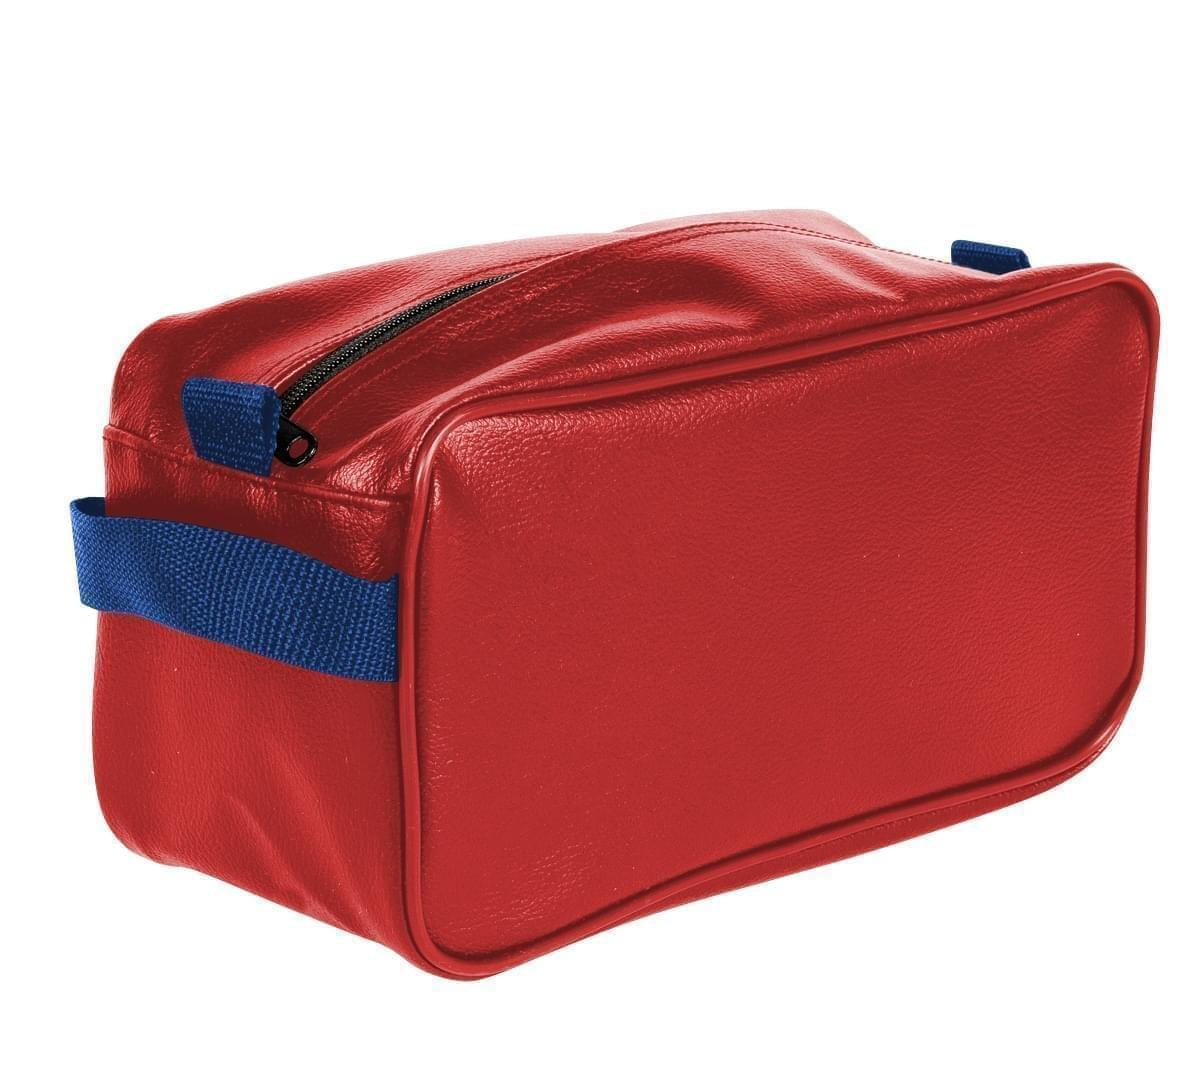 USA Made Cosmetic & Toiletry Cases, Red-Royal Blue, 3000996-AZ3